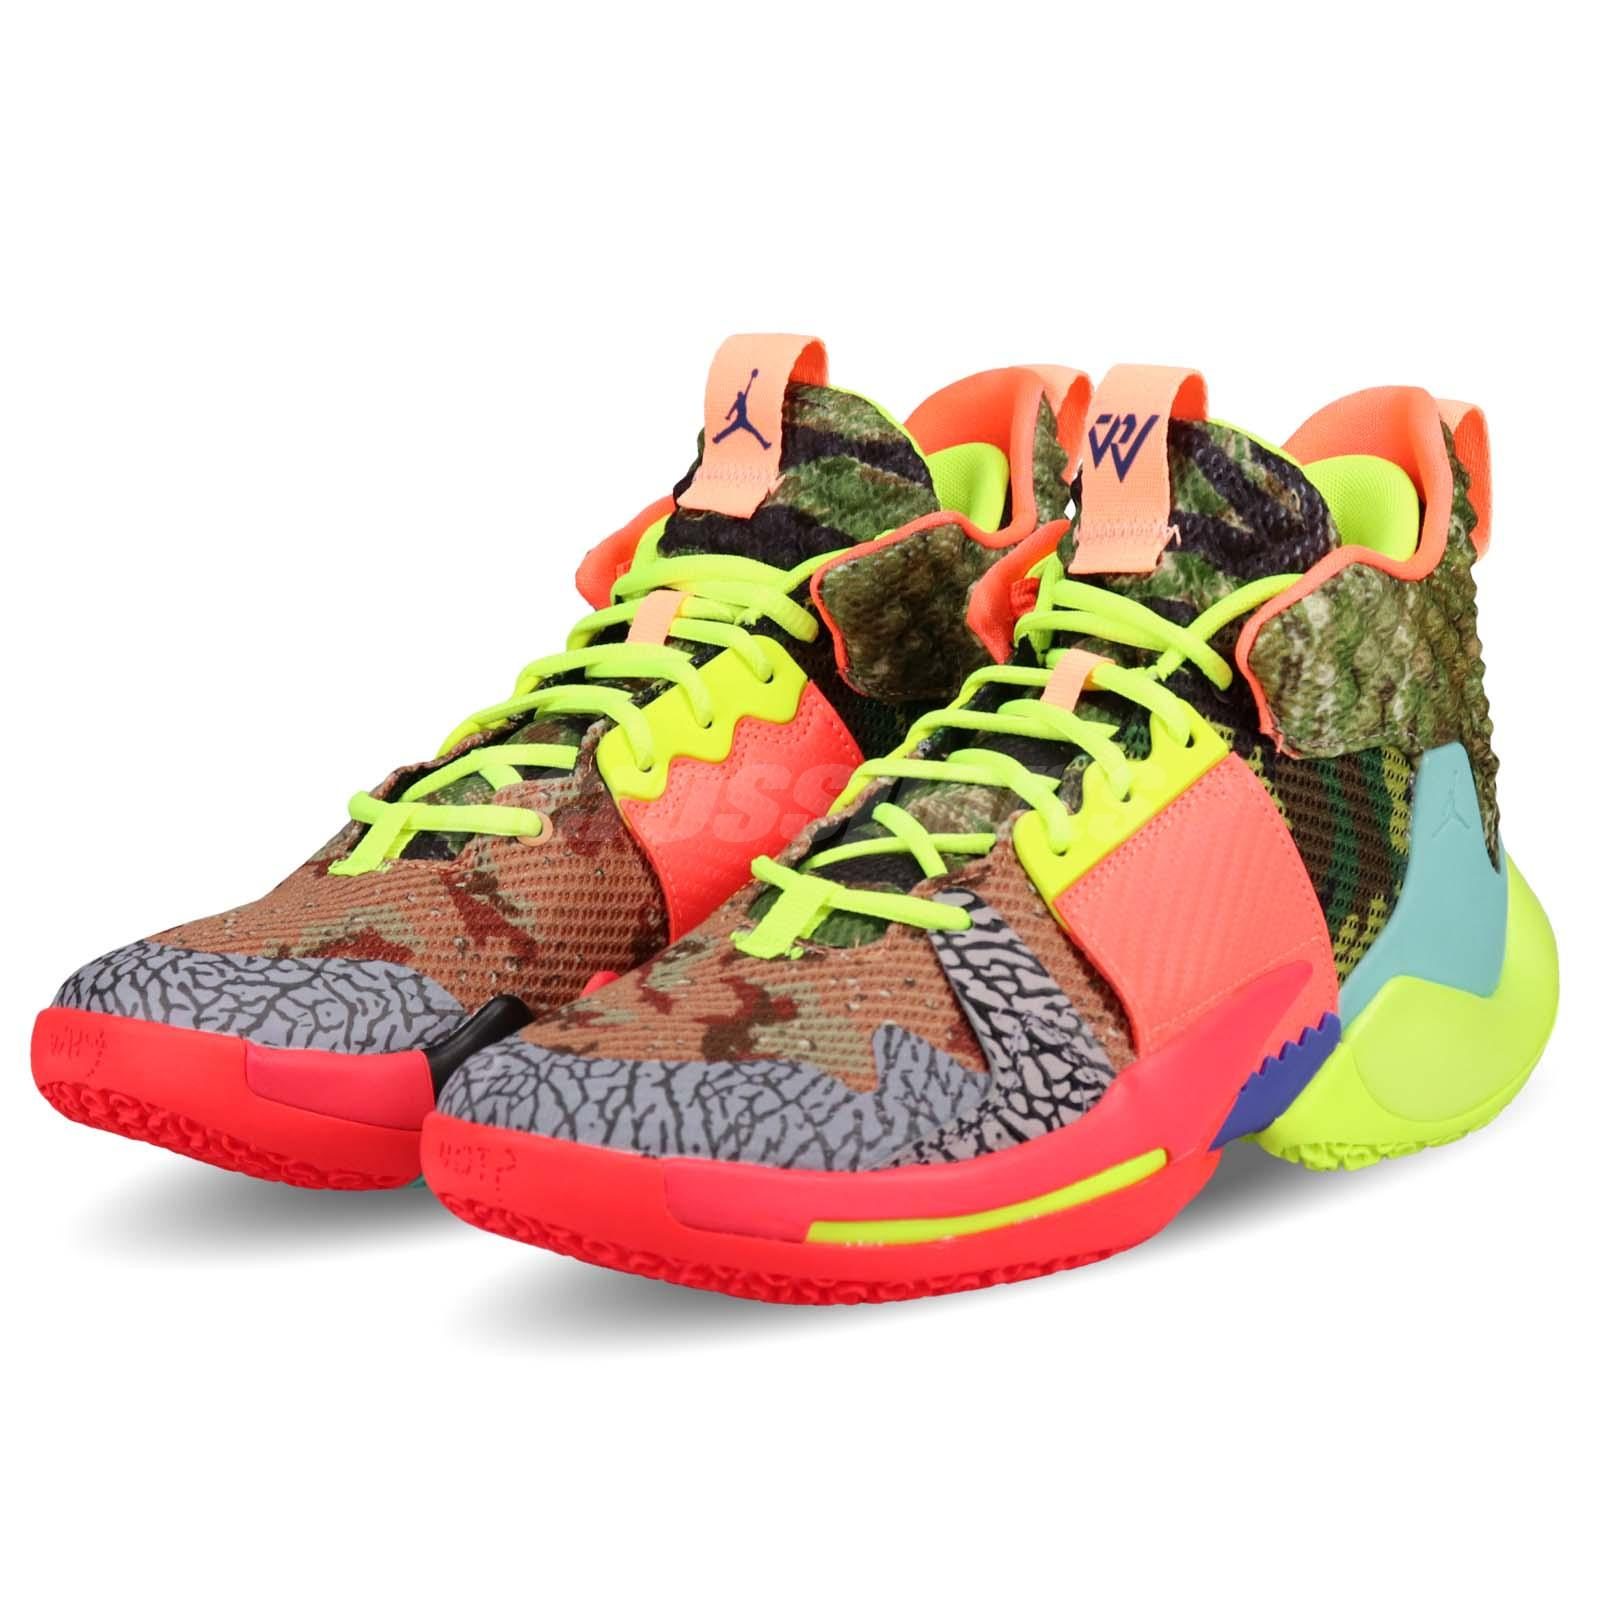 Chaussure Pas Terrex Chaussure Canyoning Cher Cher Terrex Canyoning Pas 7gYb6fyv